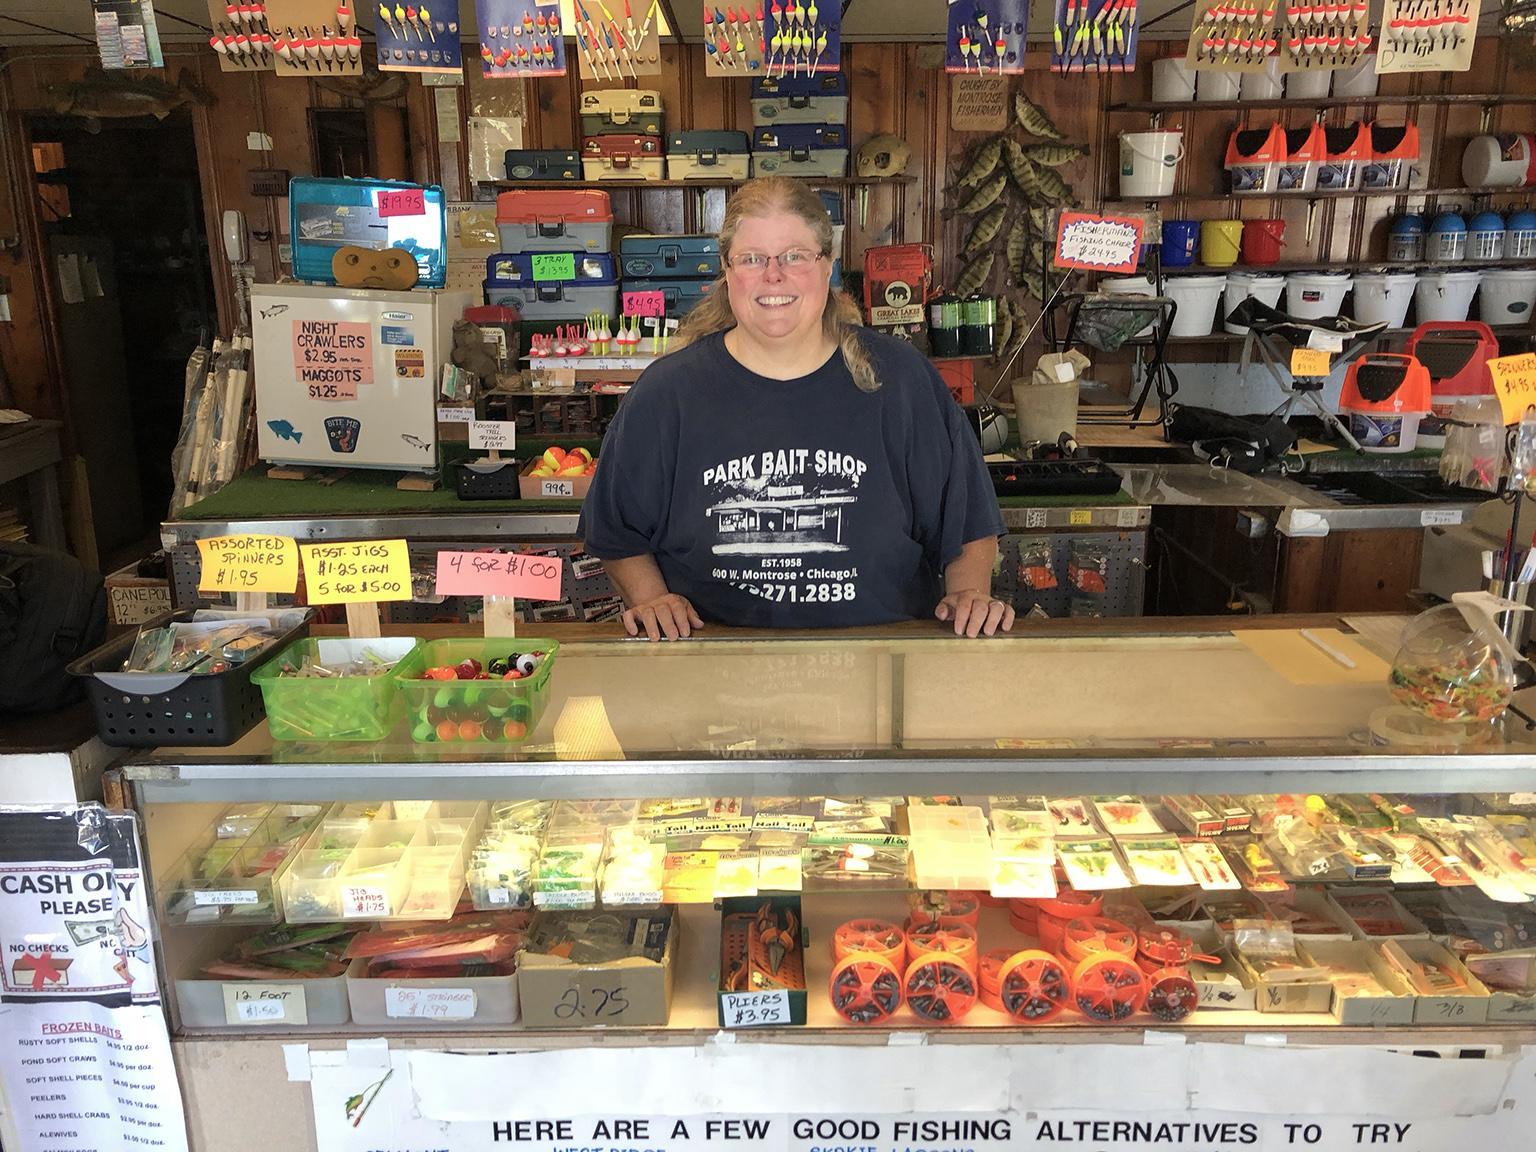 Stacey Greene is the owner of Park Bait Shop at Montrose Harbor. There has been a bait shop on that spot since at least the 1930s. Her father, Willie Greene, founded Park Bait in 1958. (Jay Shefsky / Chicago Tonight)